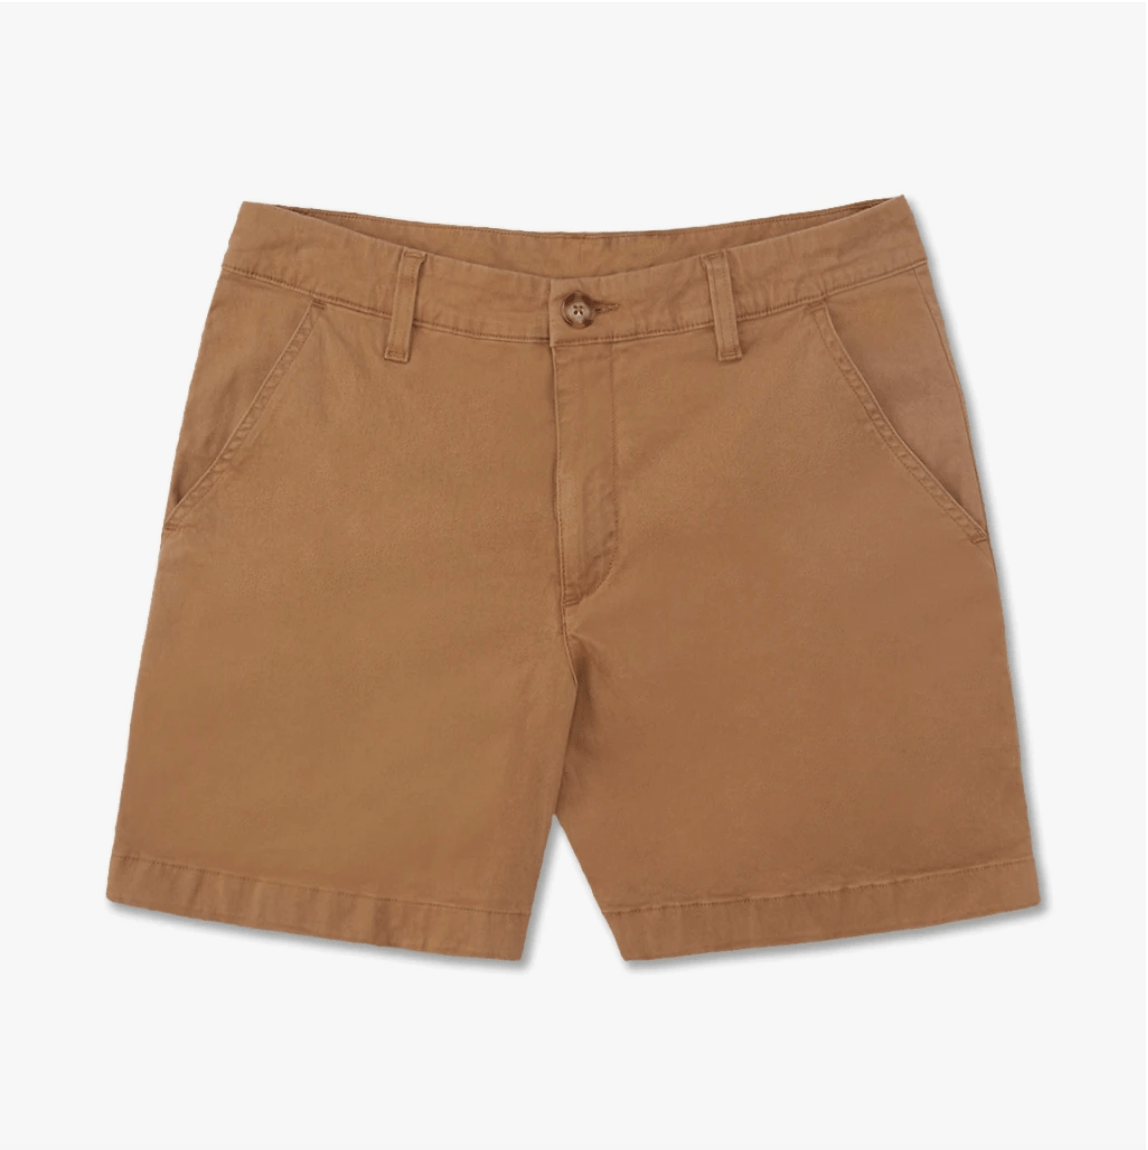 The Staples 5.5 Chubbies Shorts